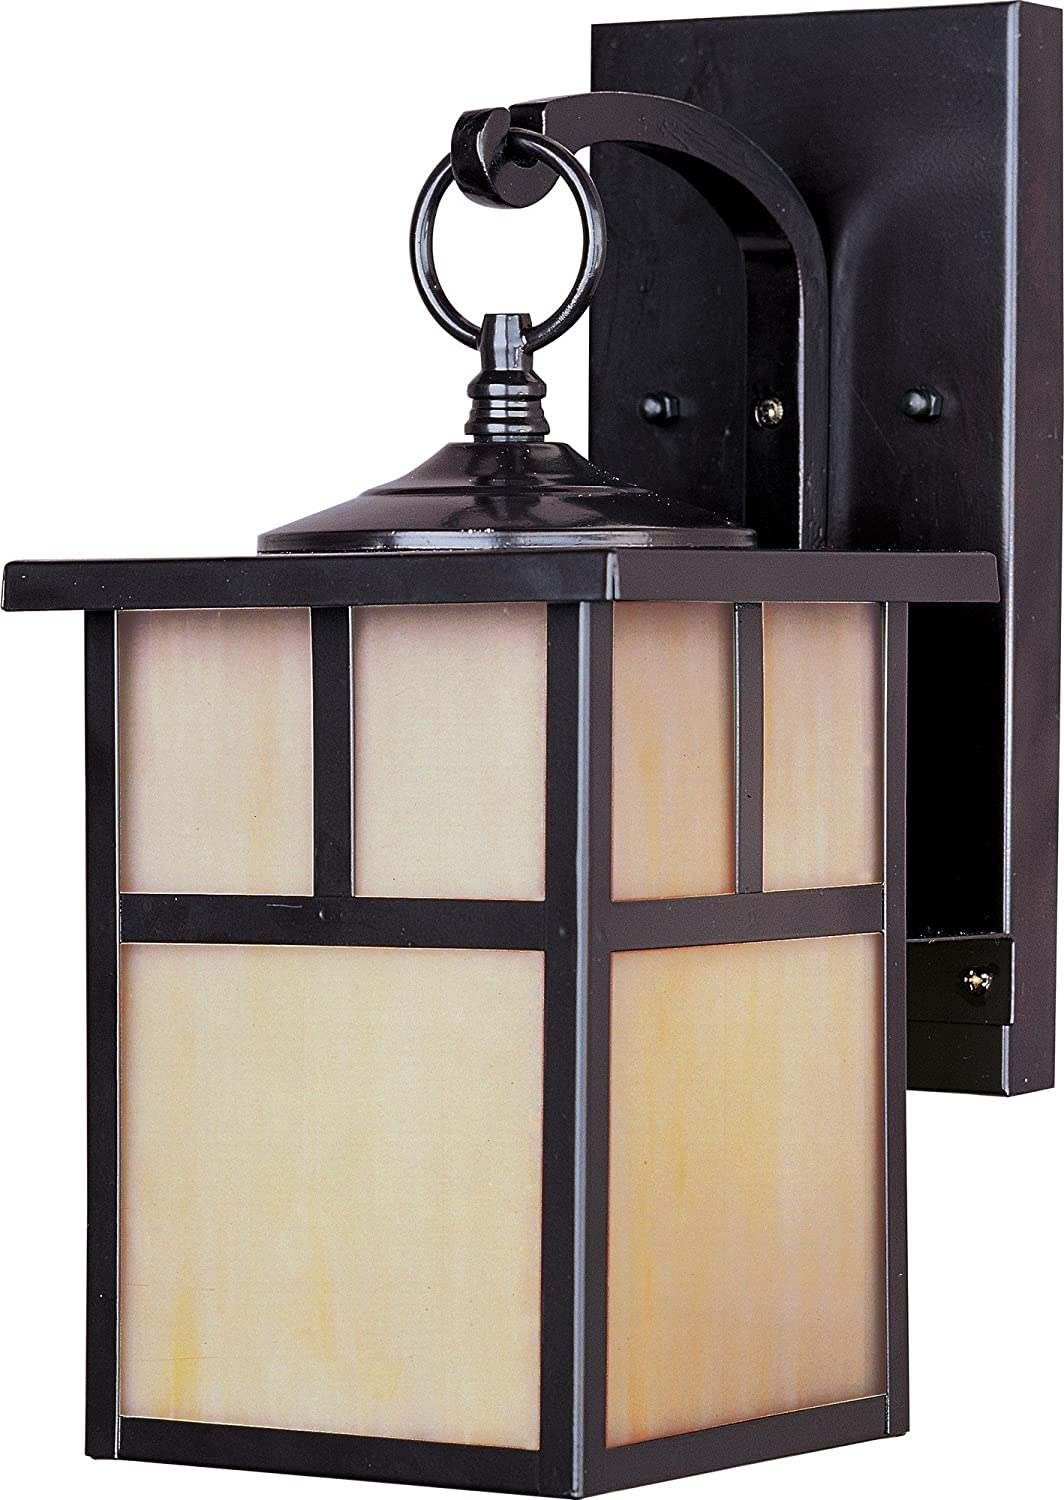 Maxim 4053HOBU Coldwater 1-Light Outdoor Wall Lantern, Burnished Finish, Honey Glass, MB Incandescent Incandescent Bulb , 100W Max., Dry Safety Rating, Standard Dimmable, Glass Shade Material, 5750 Rated Lumens